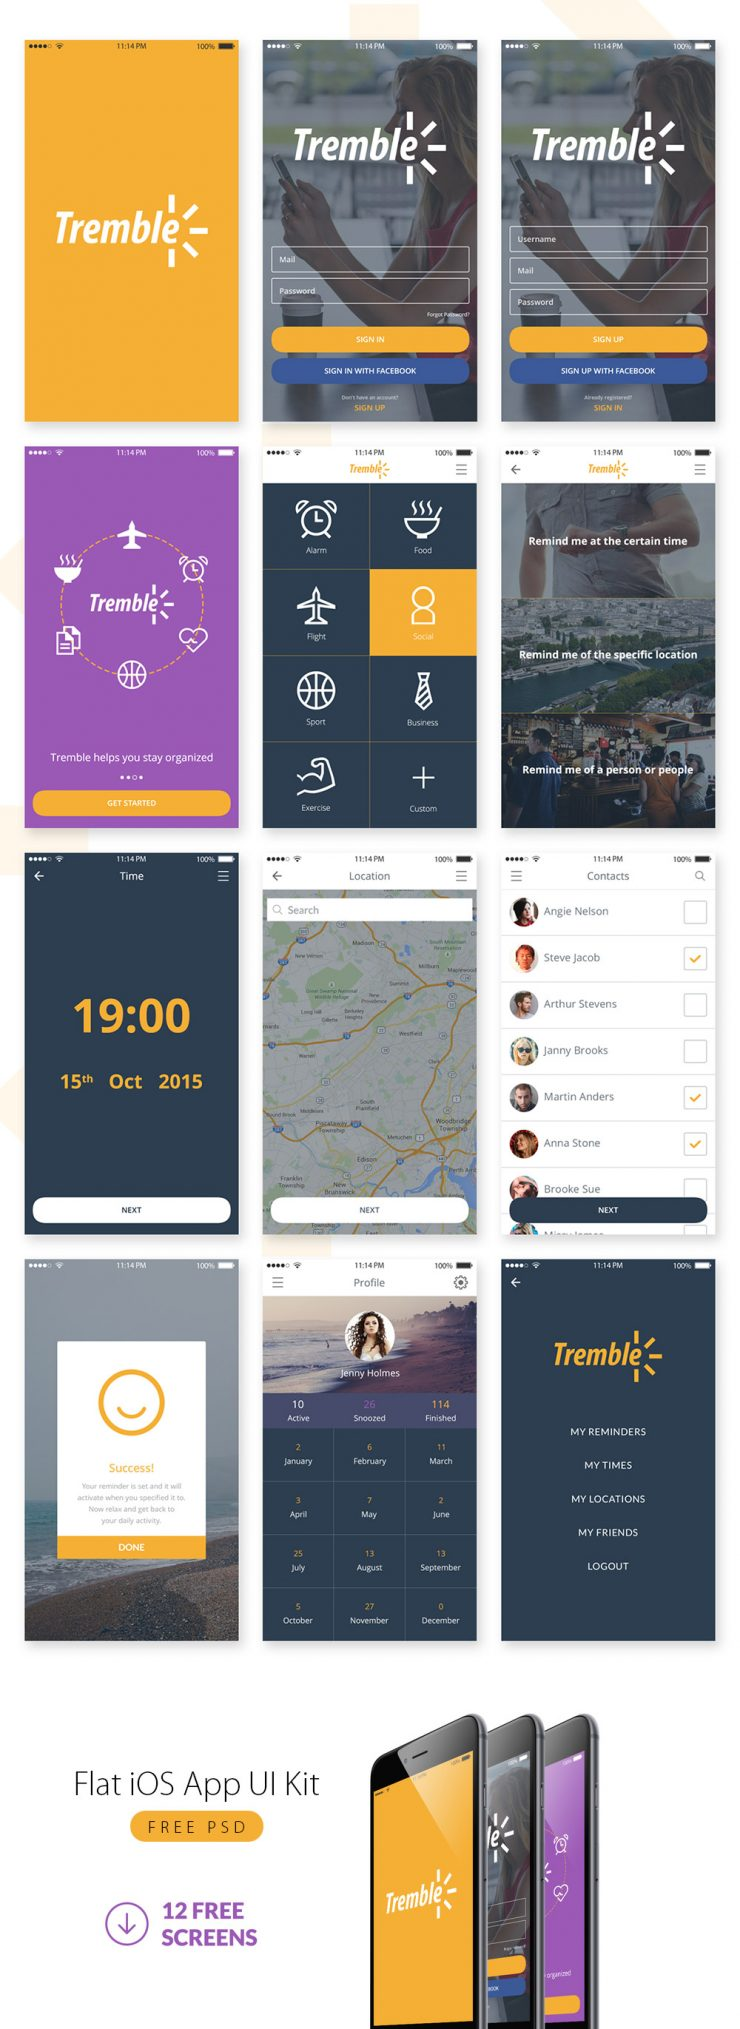 Flat iOS App UI Kit Free PSD yellow Web Resources Web Elements Web Design Elements Web UX User Login User Interface unique ui set ui kit UI elements UI Stylish SignUp signin Resources reminder Quality purple psd kit PSD Professional pack original new Modern mobile website Mobile App Login Iphone iOS Interface GUI Set GUI kit GUI Graphical User Interface Fresh Freebie Free PSD free app Free flat style Flat Design Flat Elements Download detailed Design Resources Design Elements Design Creative Contacts Colorful Clean awesome Application App